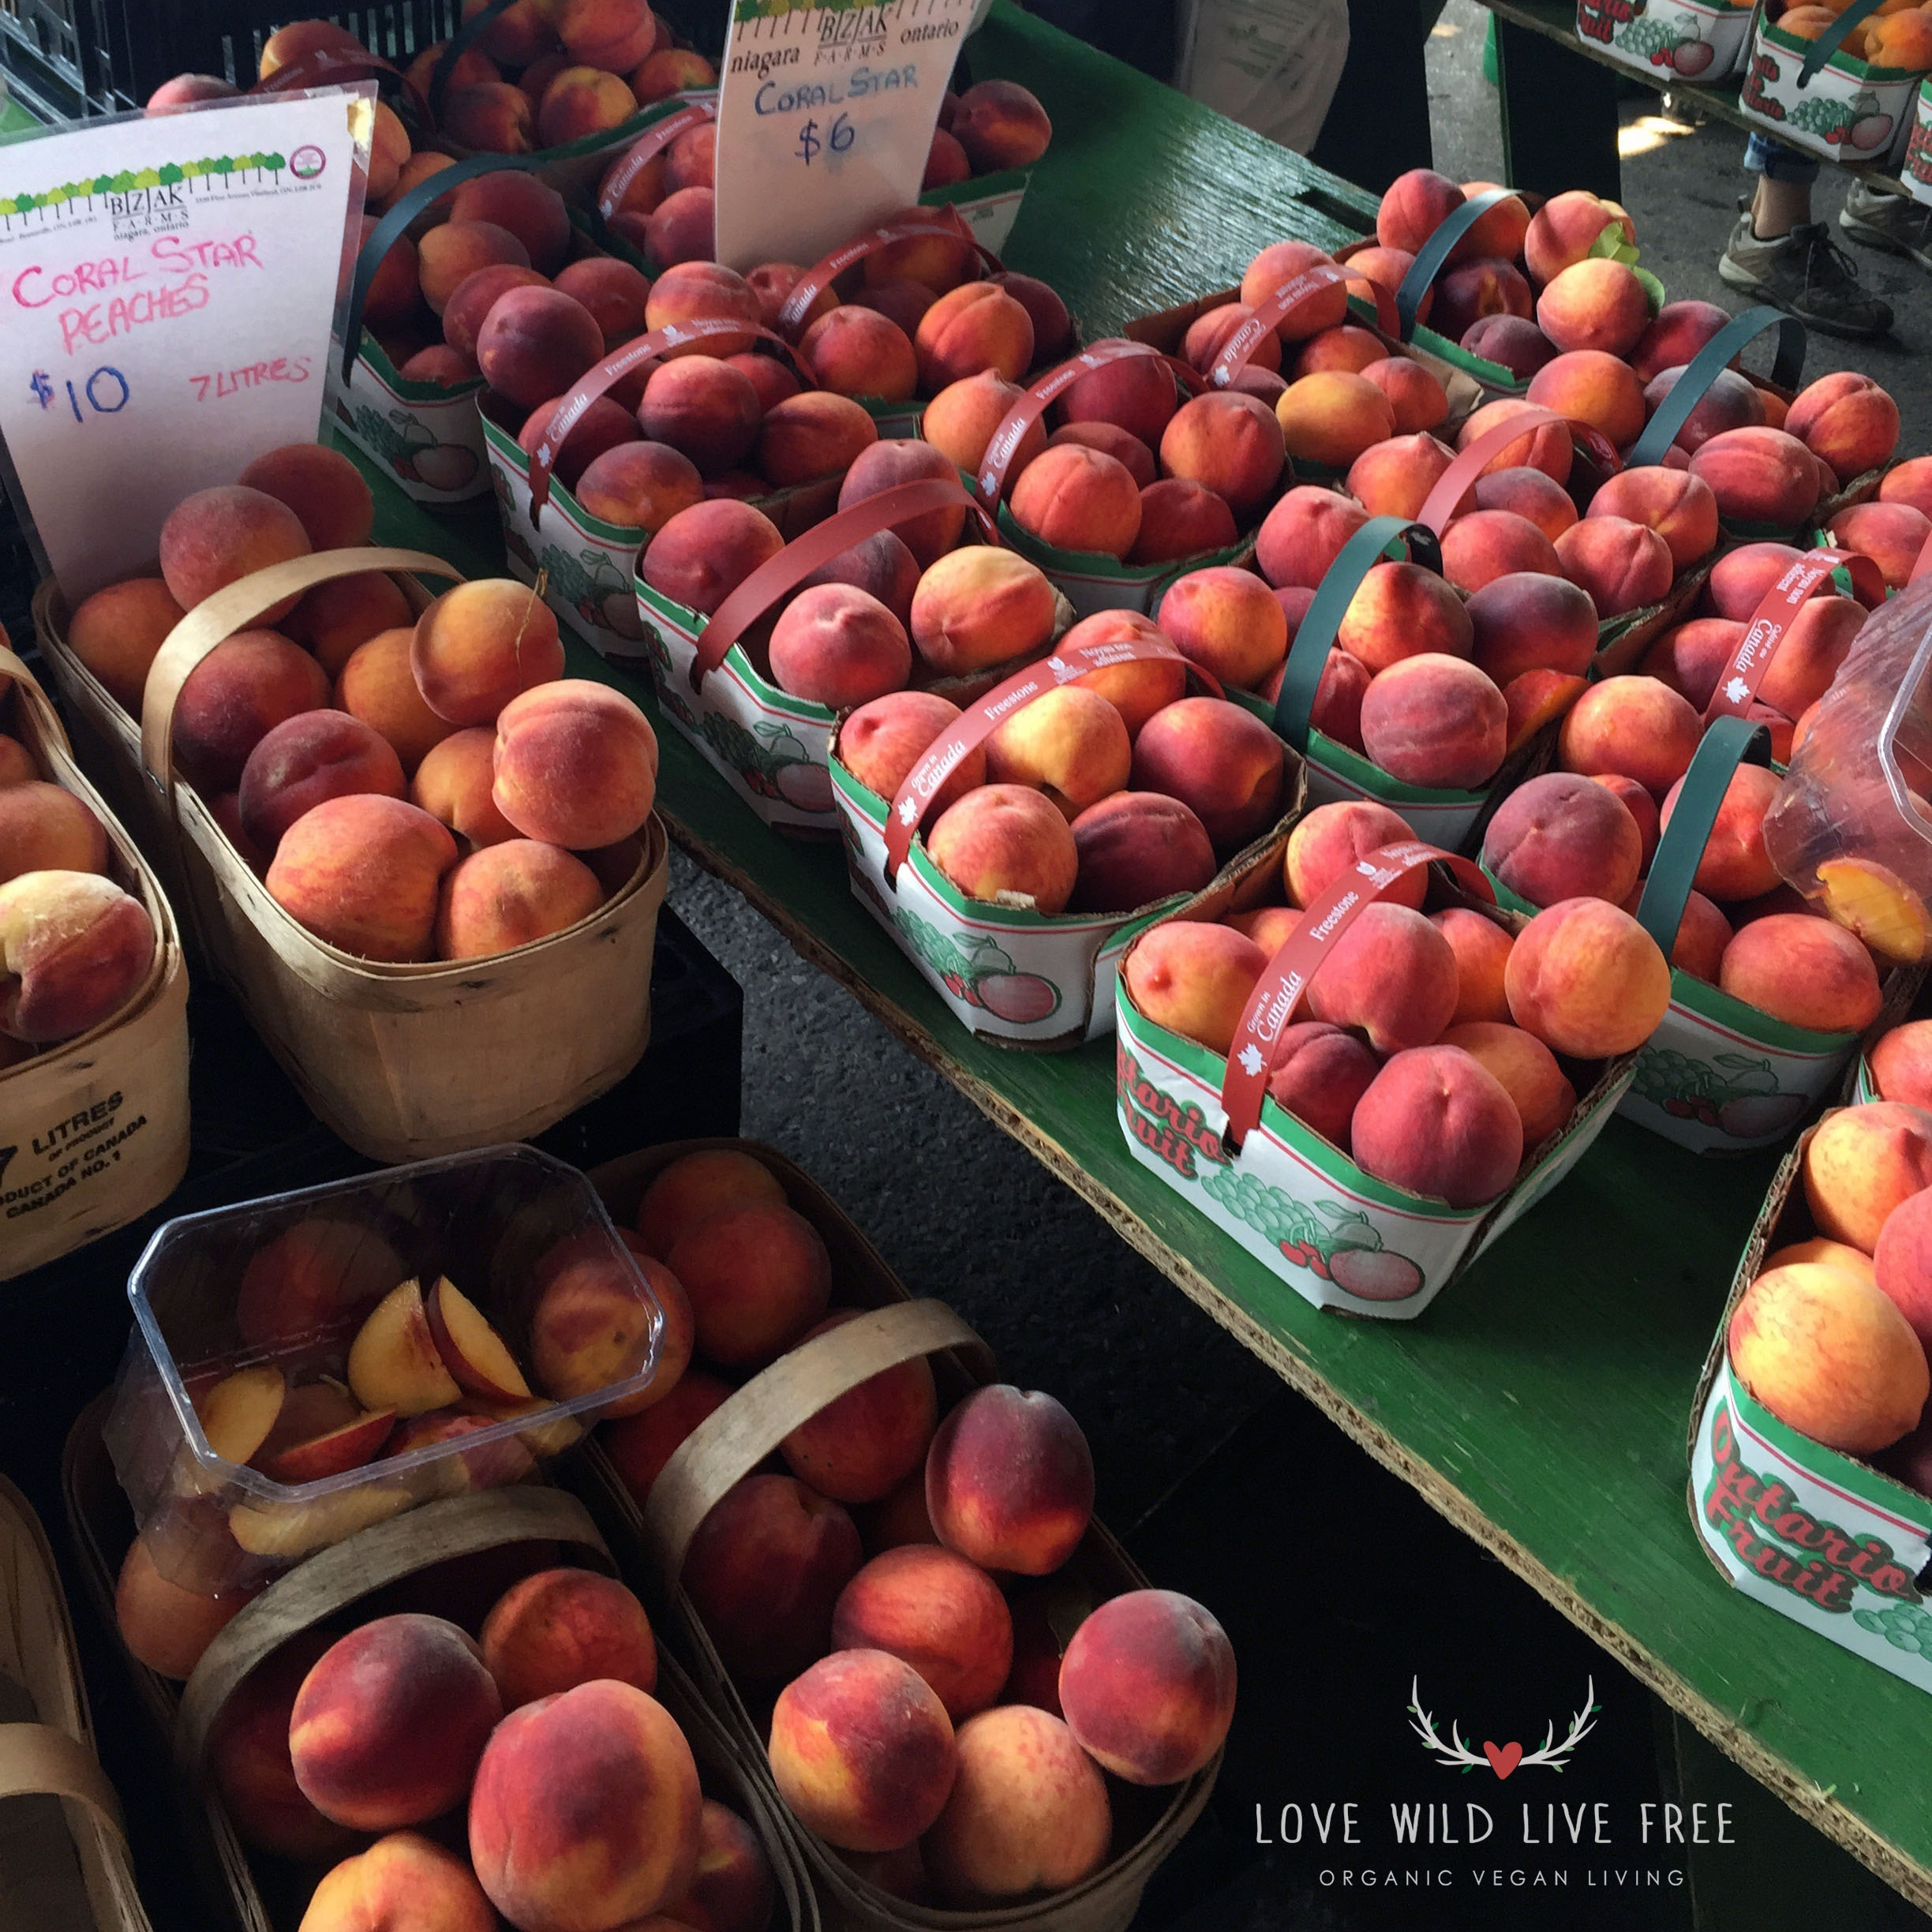 Bizjak's Coral Star Peaches at Toronto's Evergreen Brick Works.  Photo by LoveWildLiveFree.